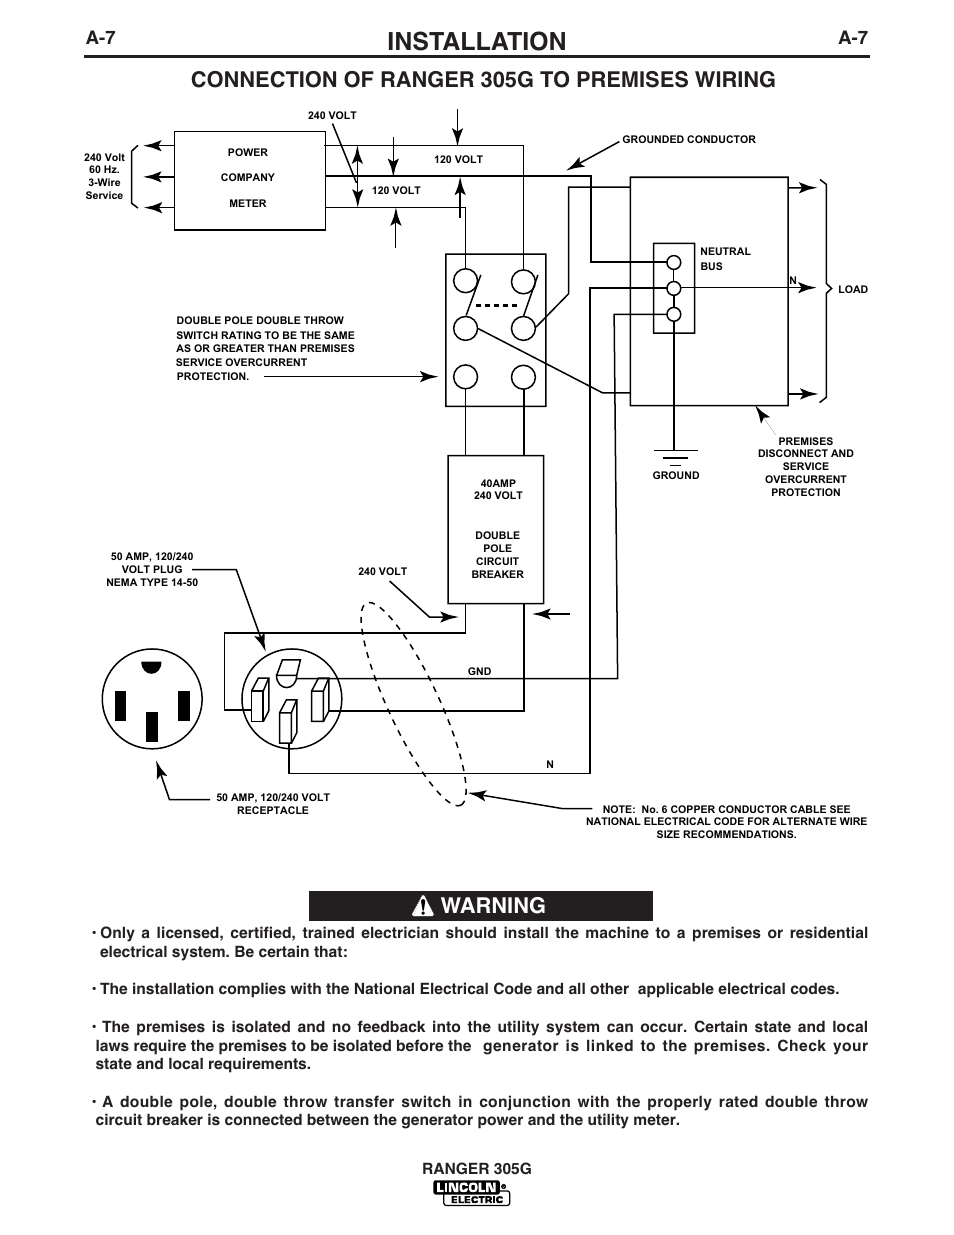 medium resolution of lincoln 305g wiring diagram wiring library lincoln 305g wiring diagram installation lincoln electric ranger 305g user